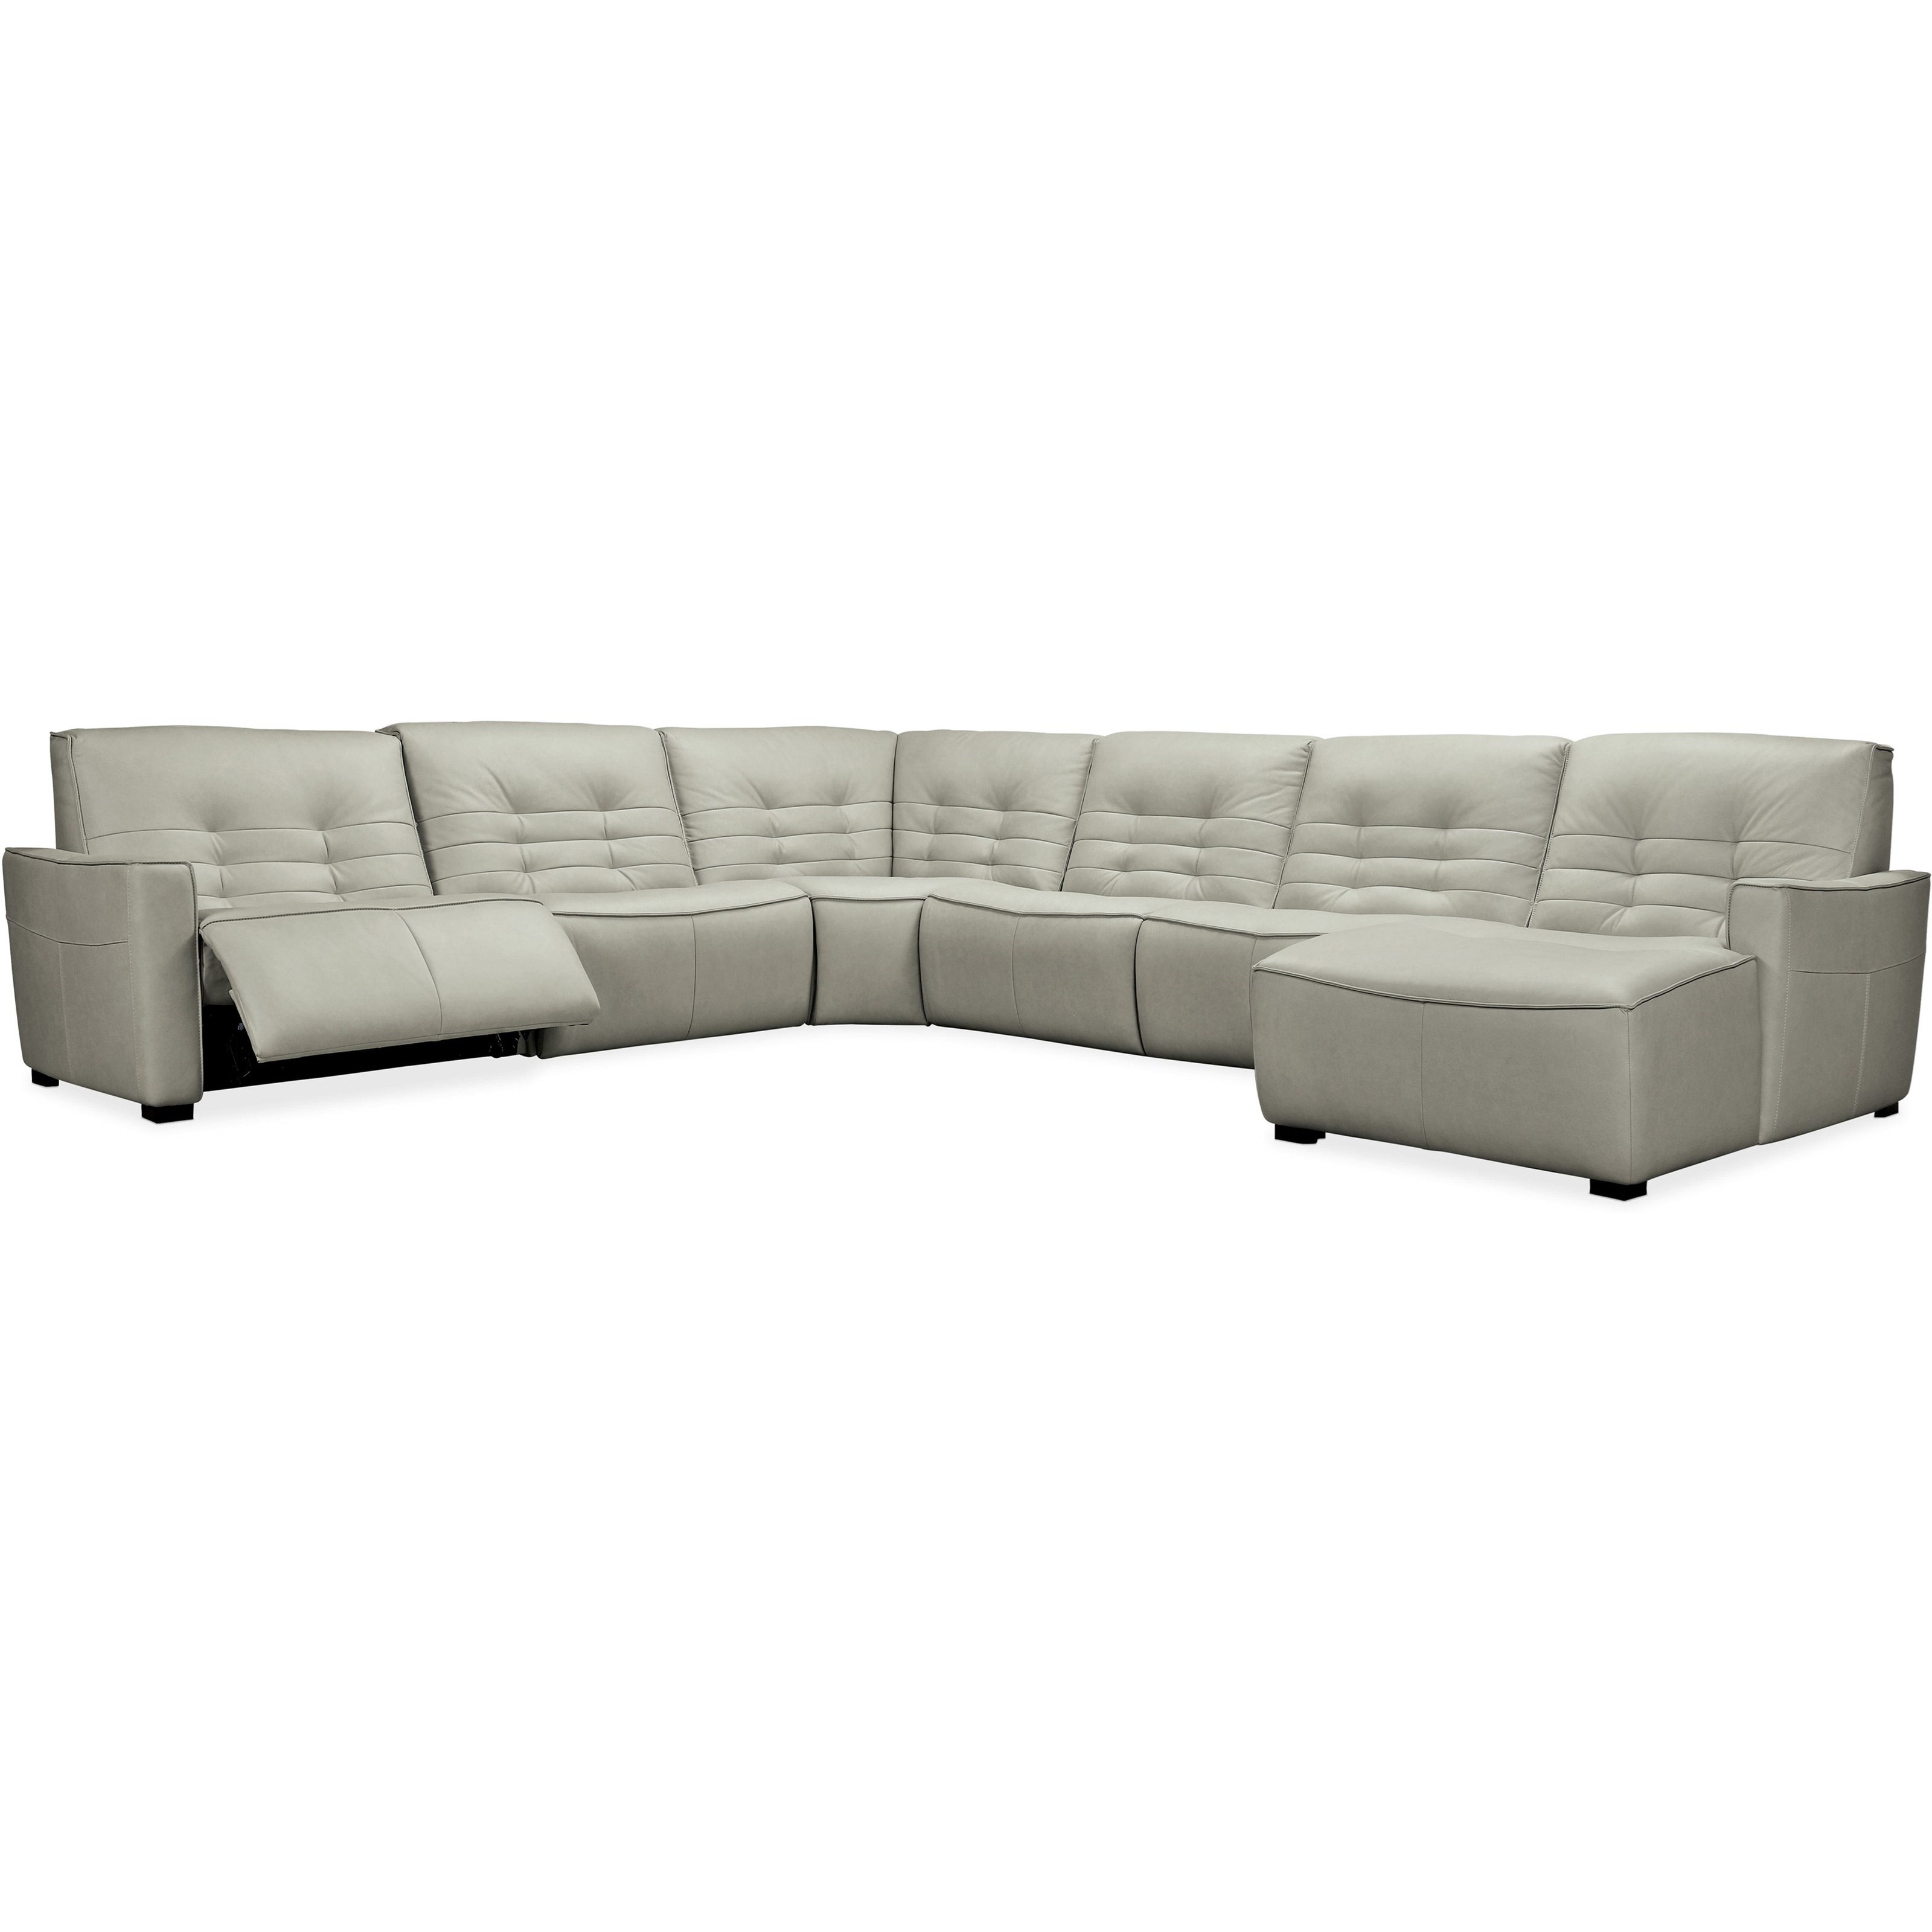 Reaux 6-Piece Power Sectional with RAF Chaise by Hooker Furniture at Miller Waldrop Furniture and Decor